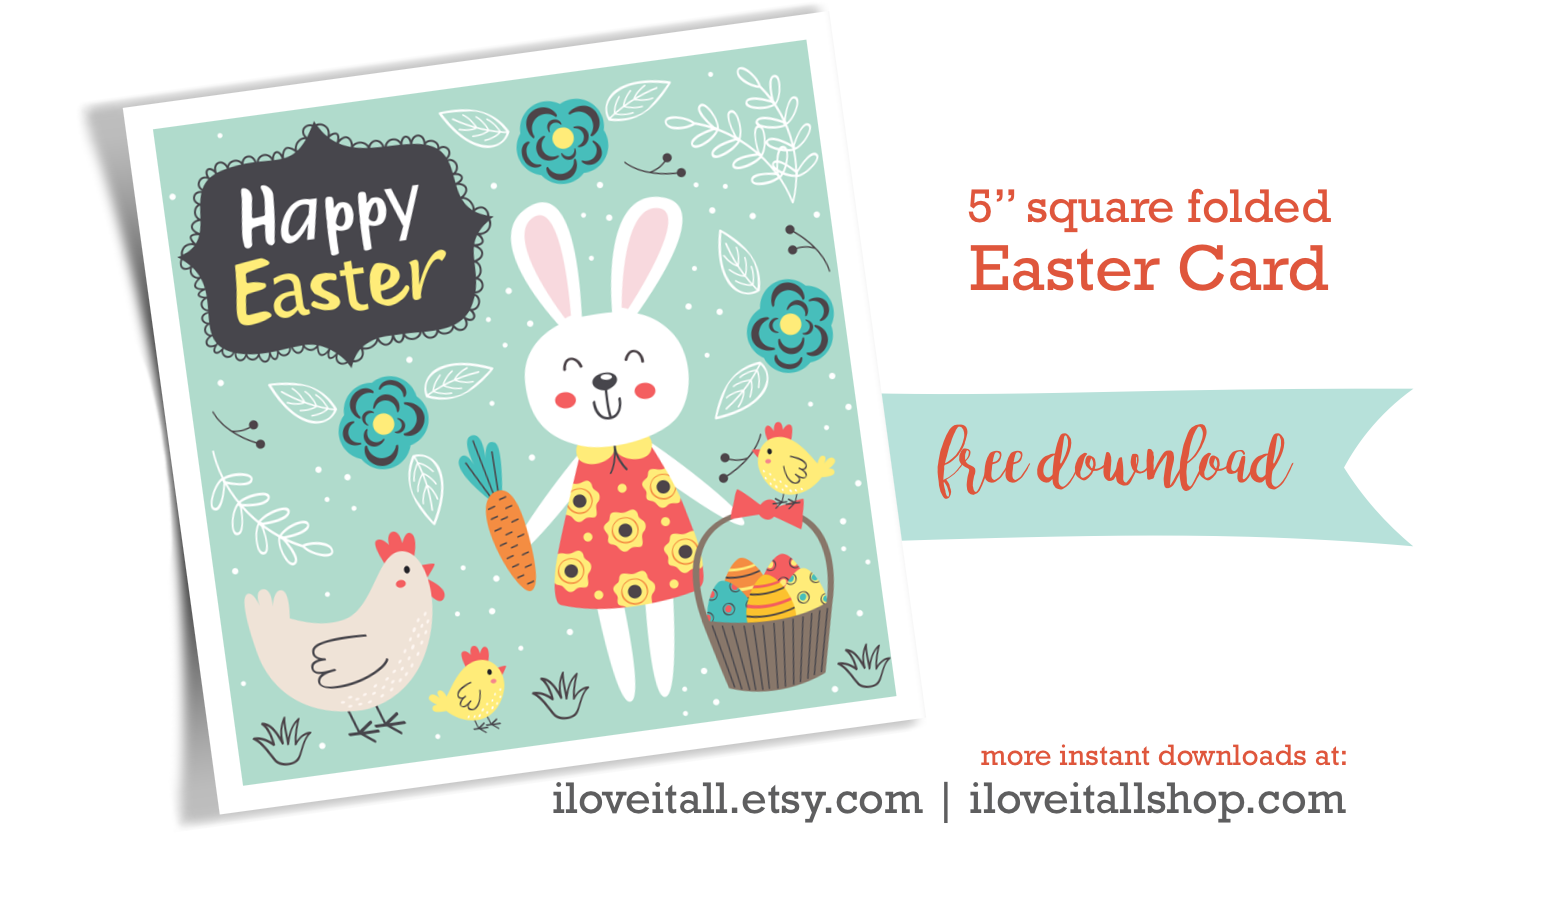 picture about Happy Easter Cards Printable referred to as No cost Easter Card